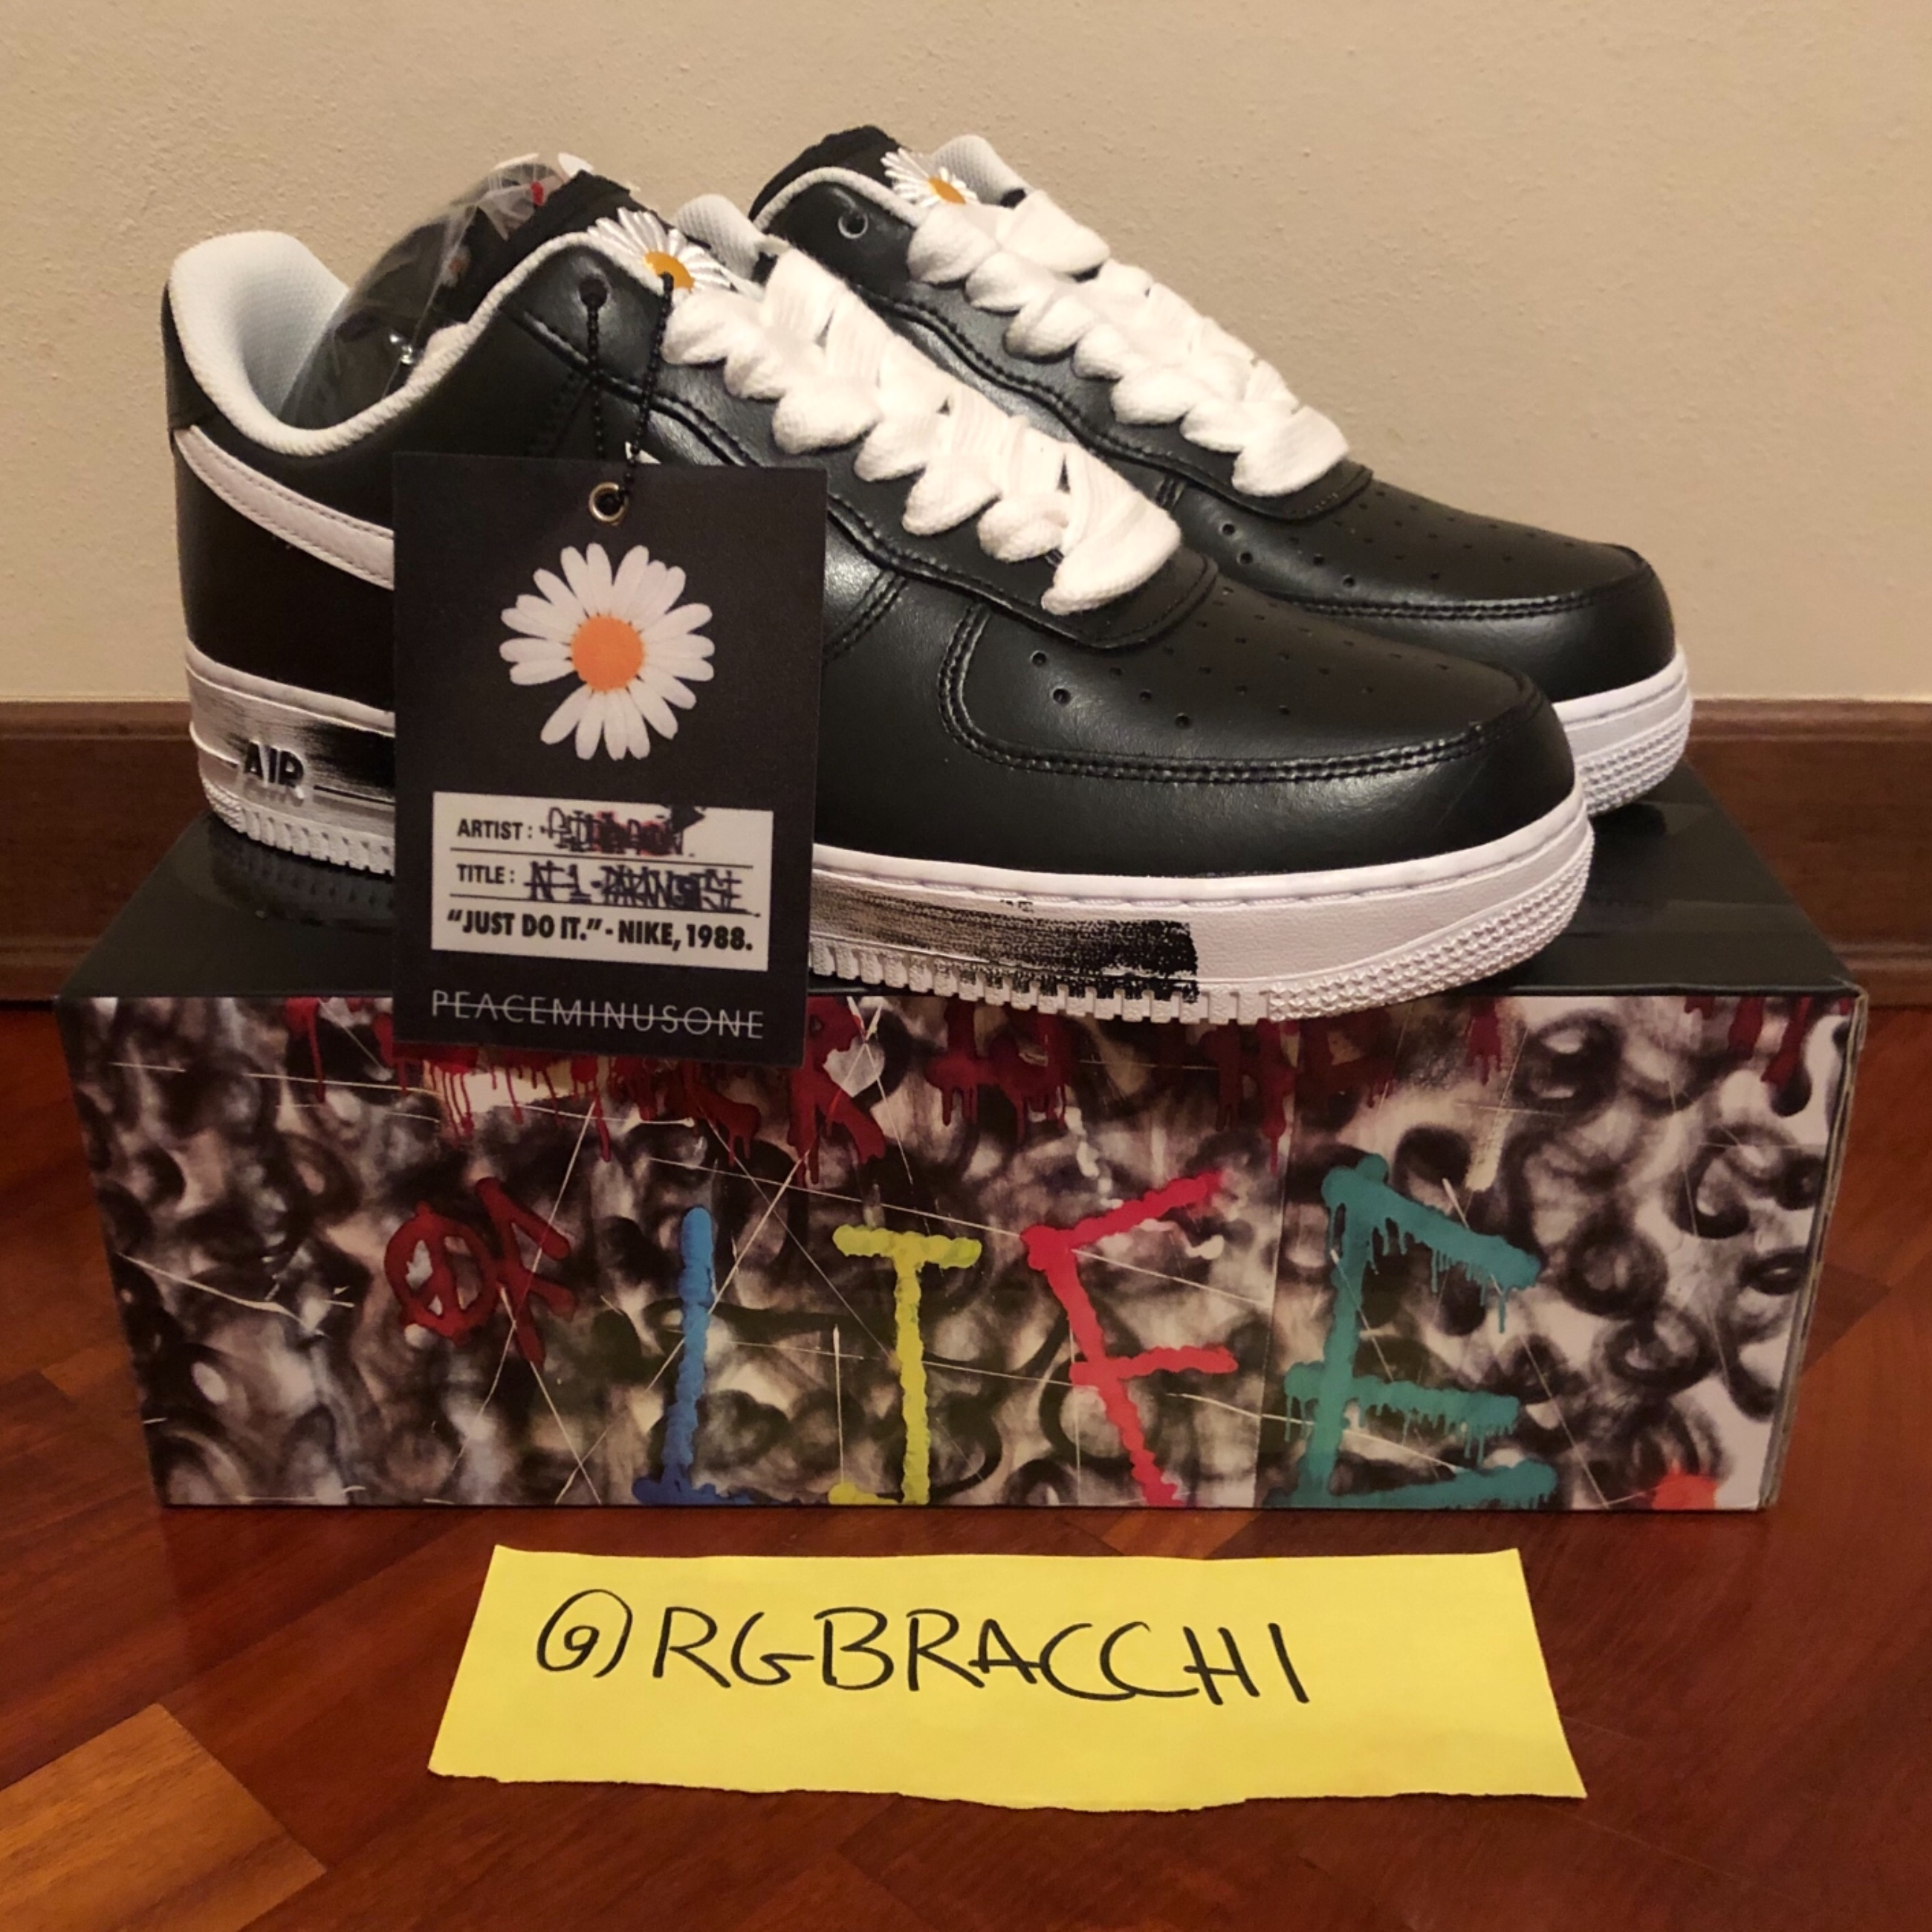 Nike Air Force 1 Low G Dragon Peaceminusone Para Noise us9.5